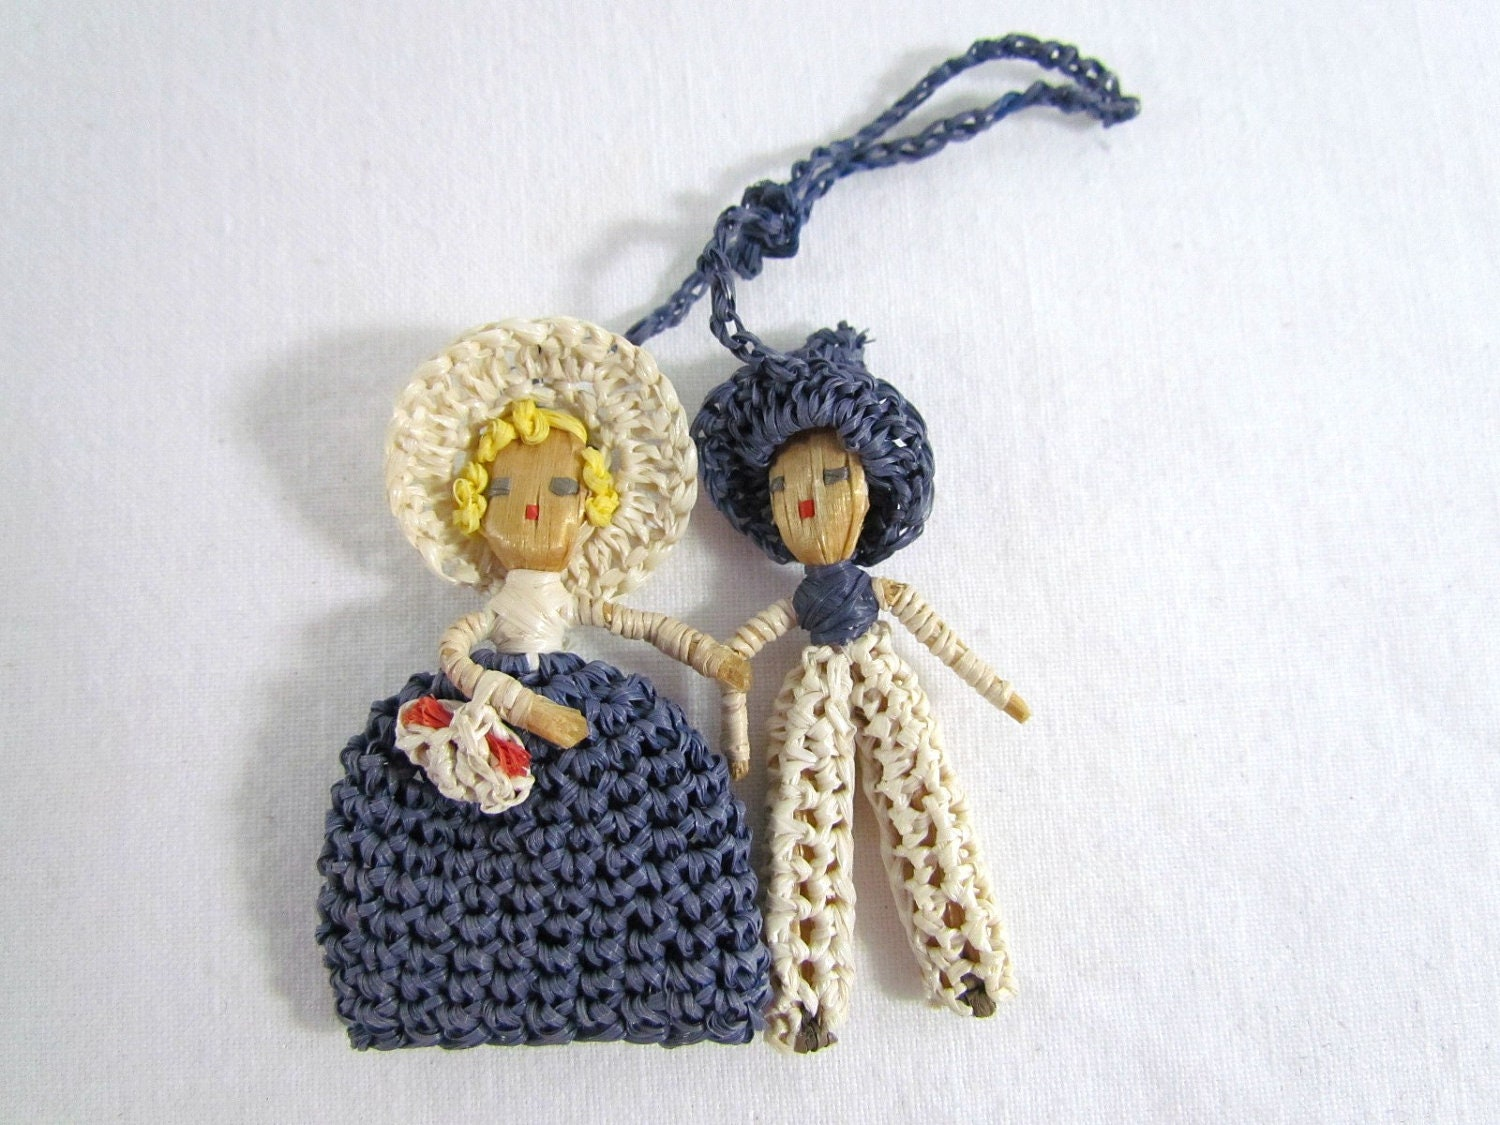 Miniature Doll Boy and Girl Crocheted So Tiny and Cute - VintagePolkaDotcom